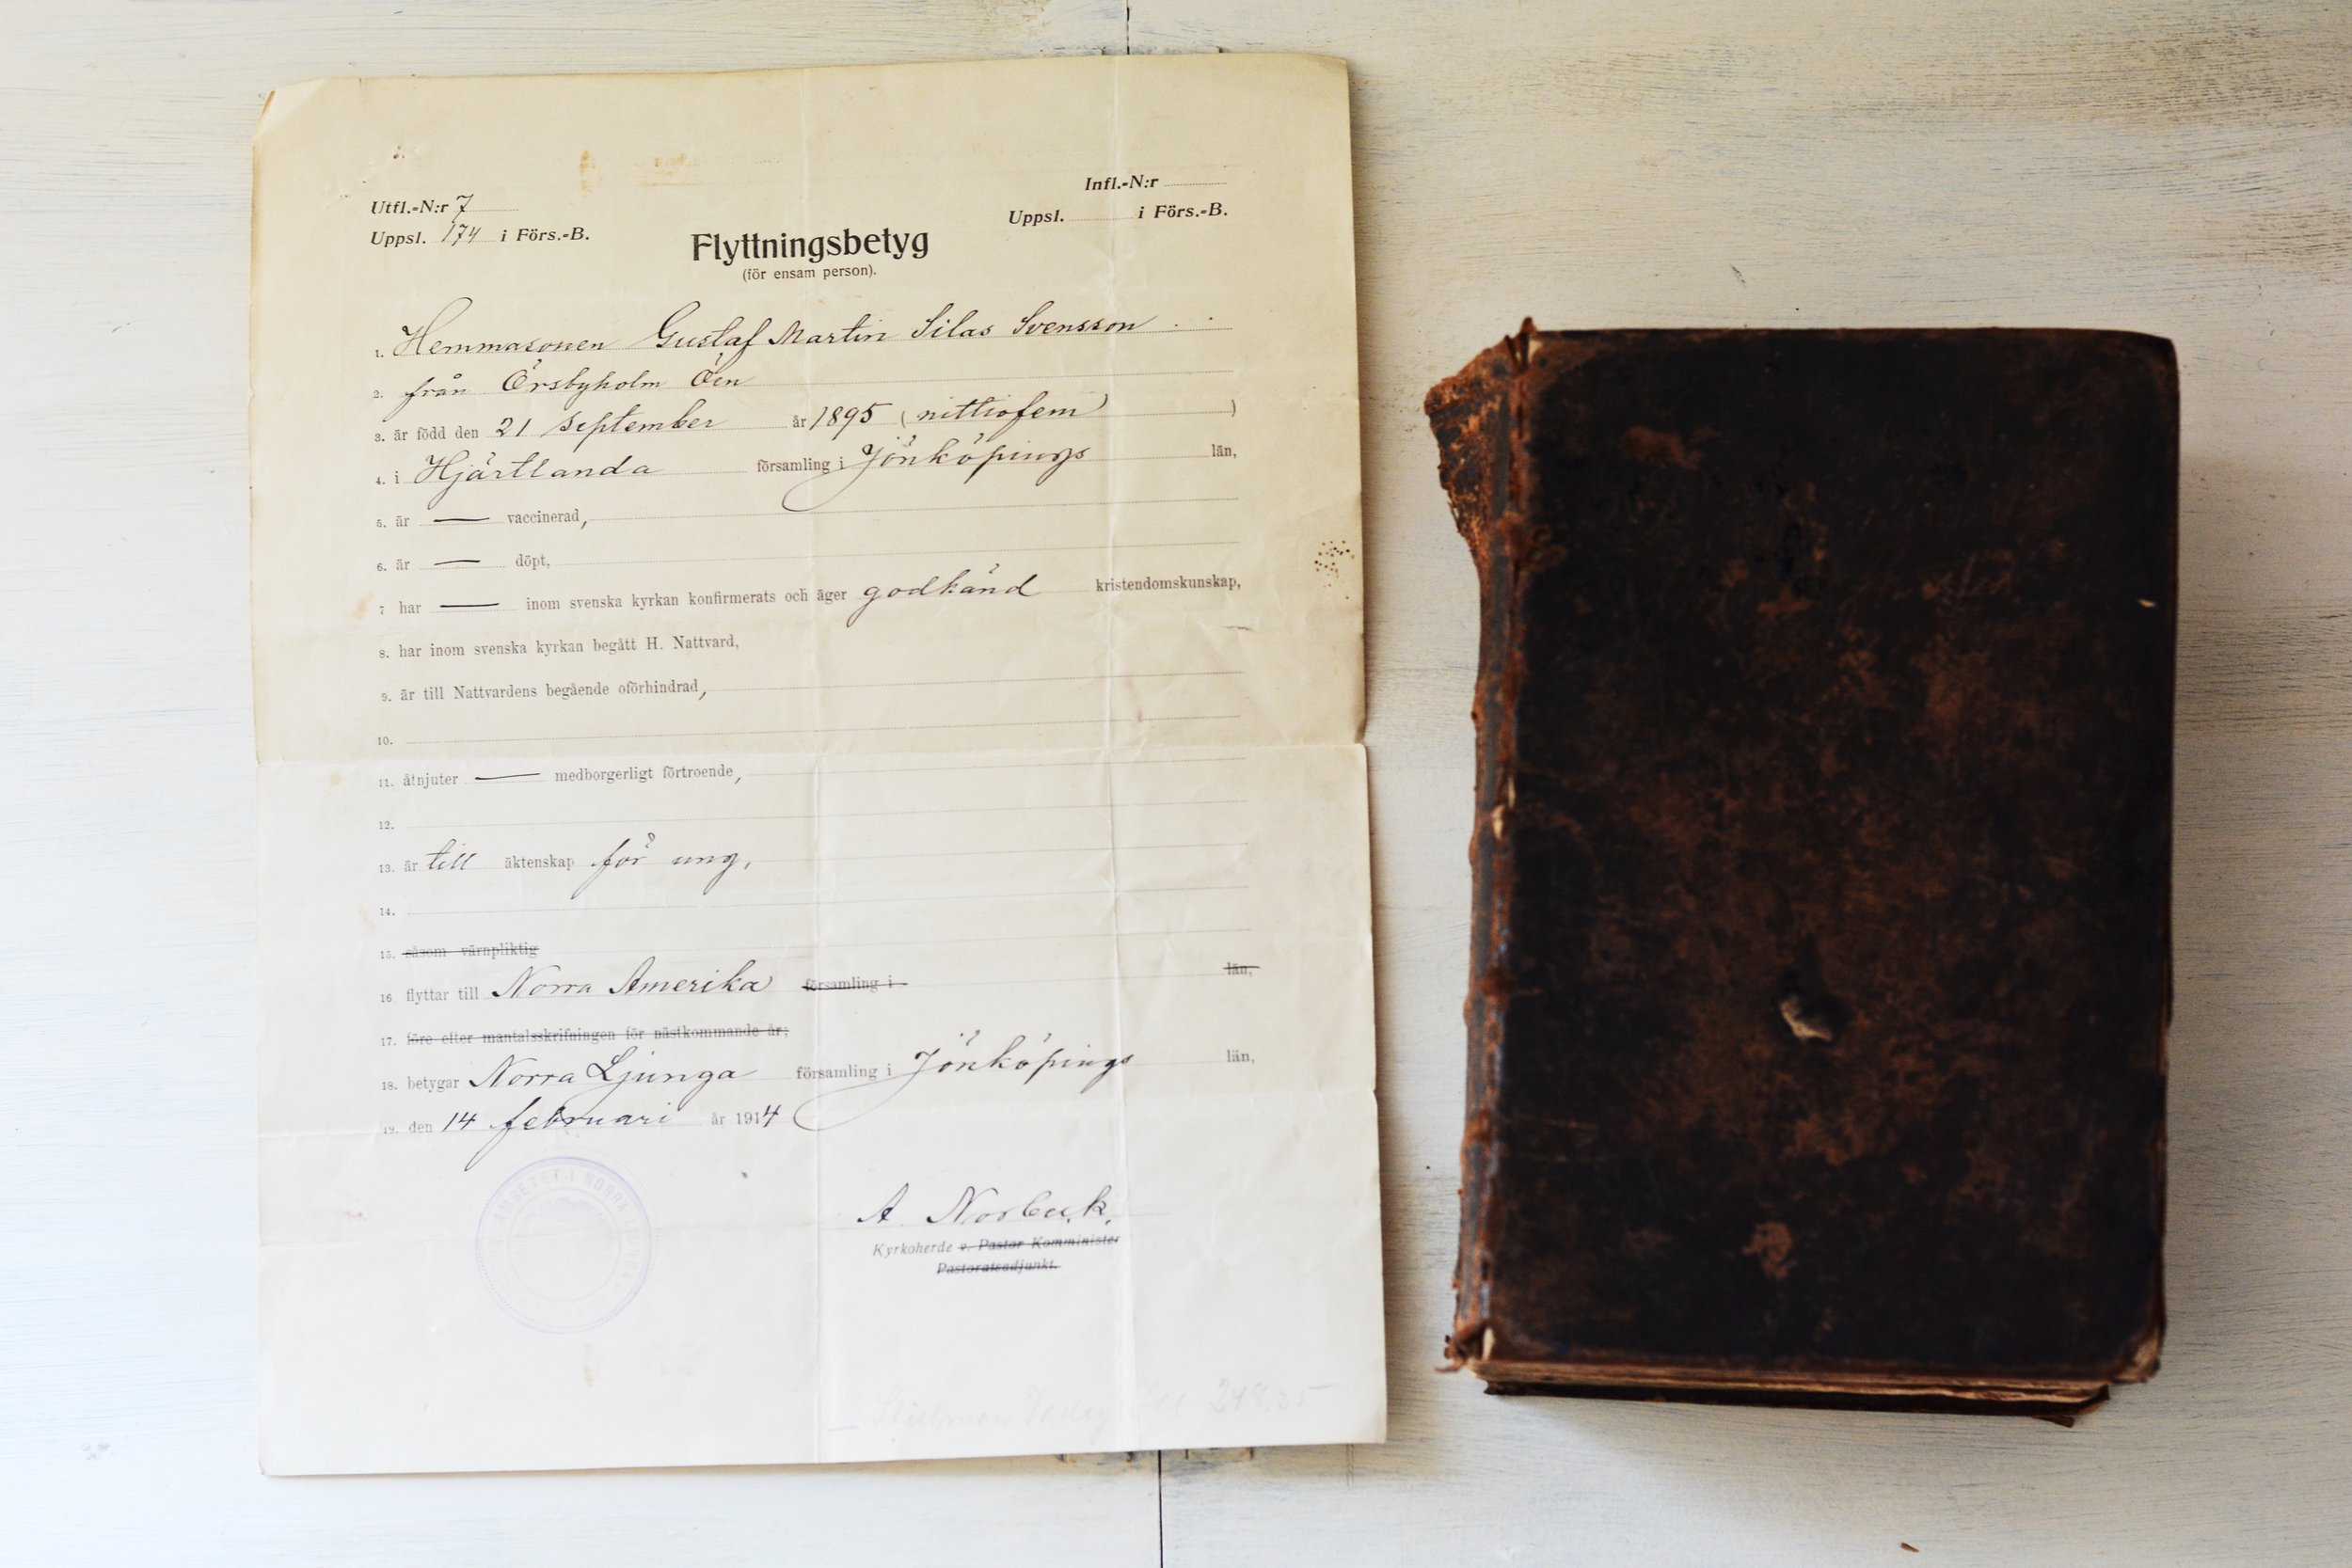 My great-grandfather's 1) Flyttningsbetyg or, official exit permit, issued by the pastor of the parish in Sweden from which he resided so that he could come to America as an immigrant, and 2) Bible brought over to America from the old country.